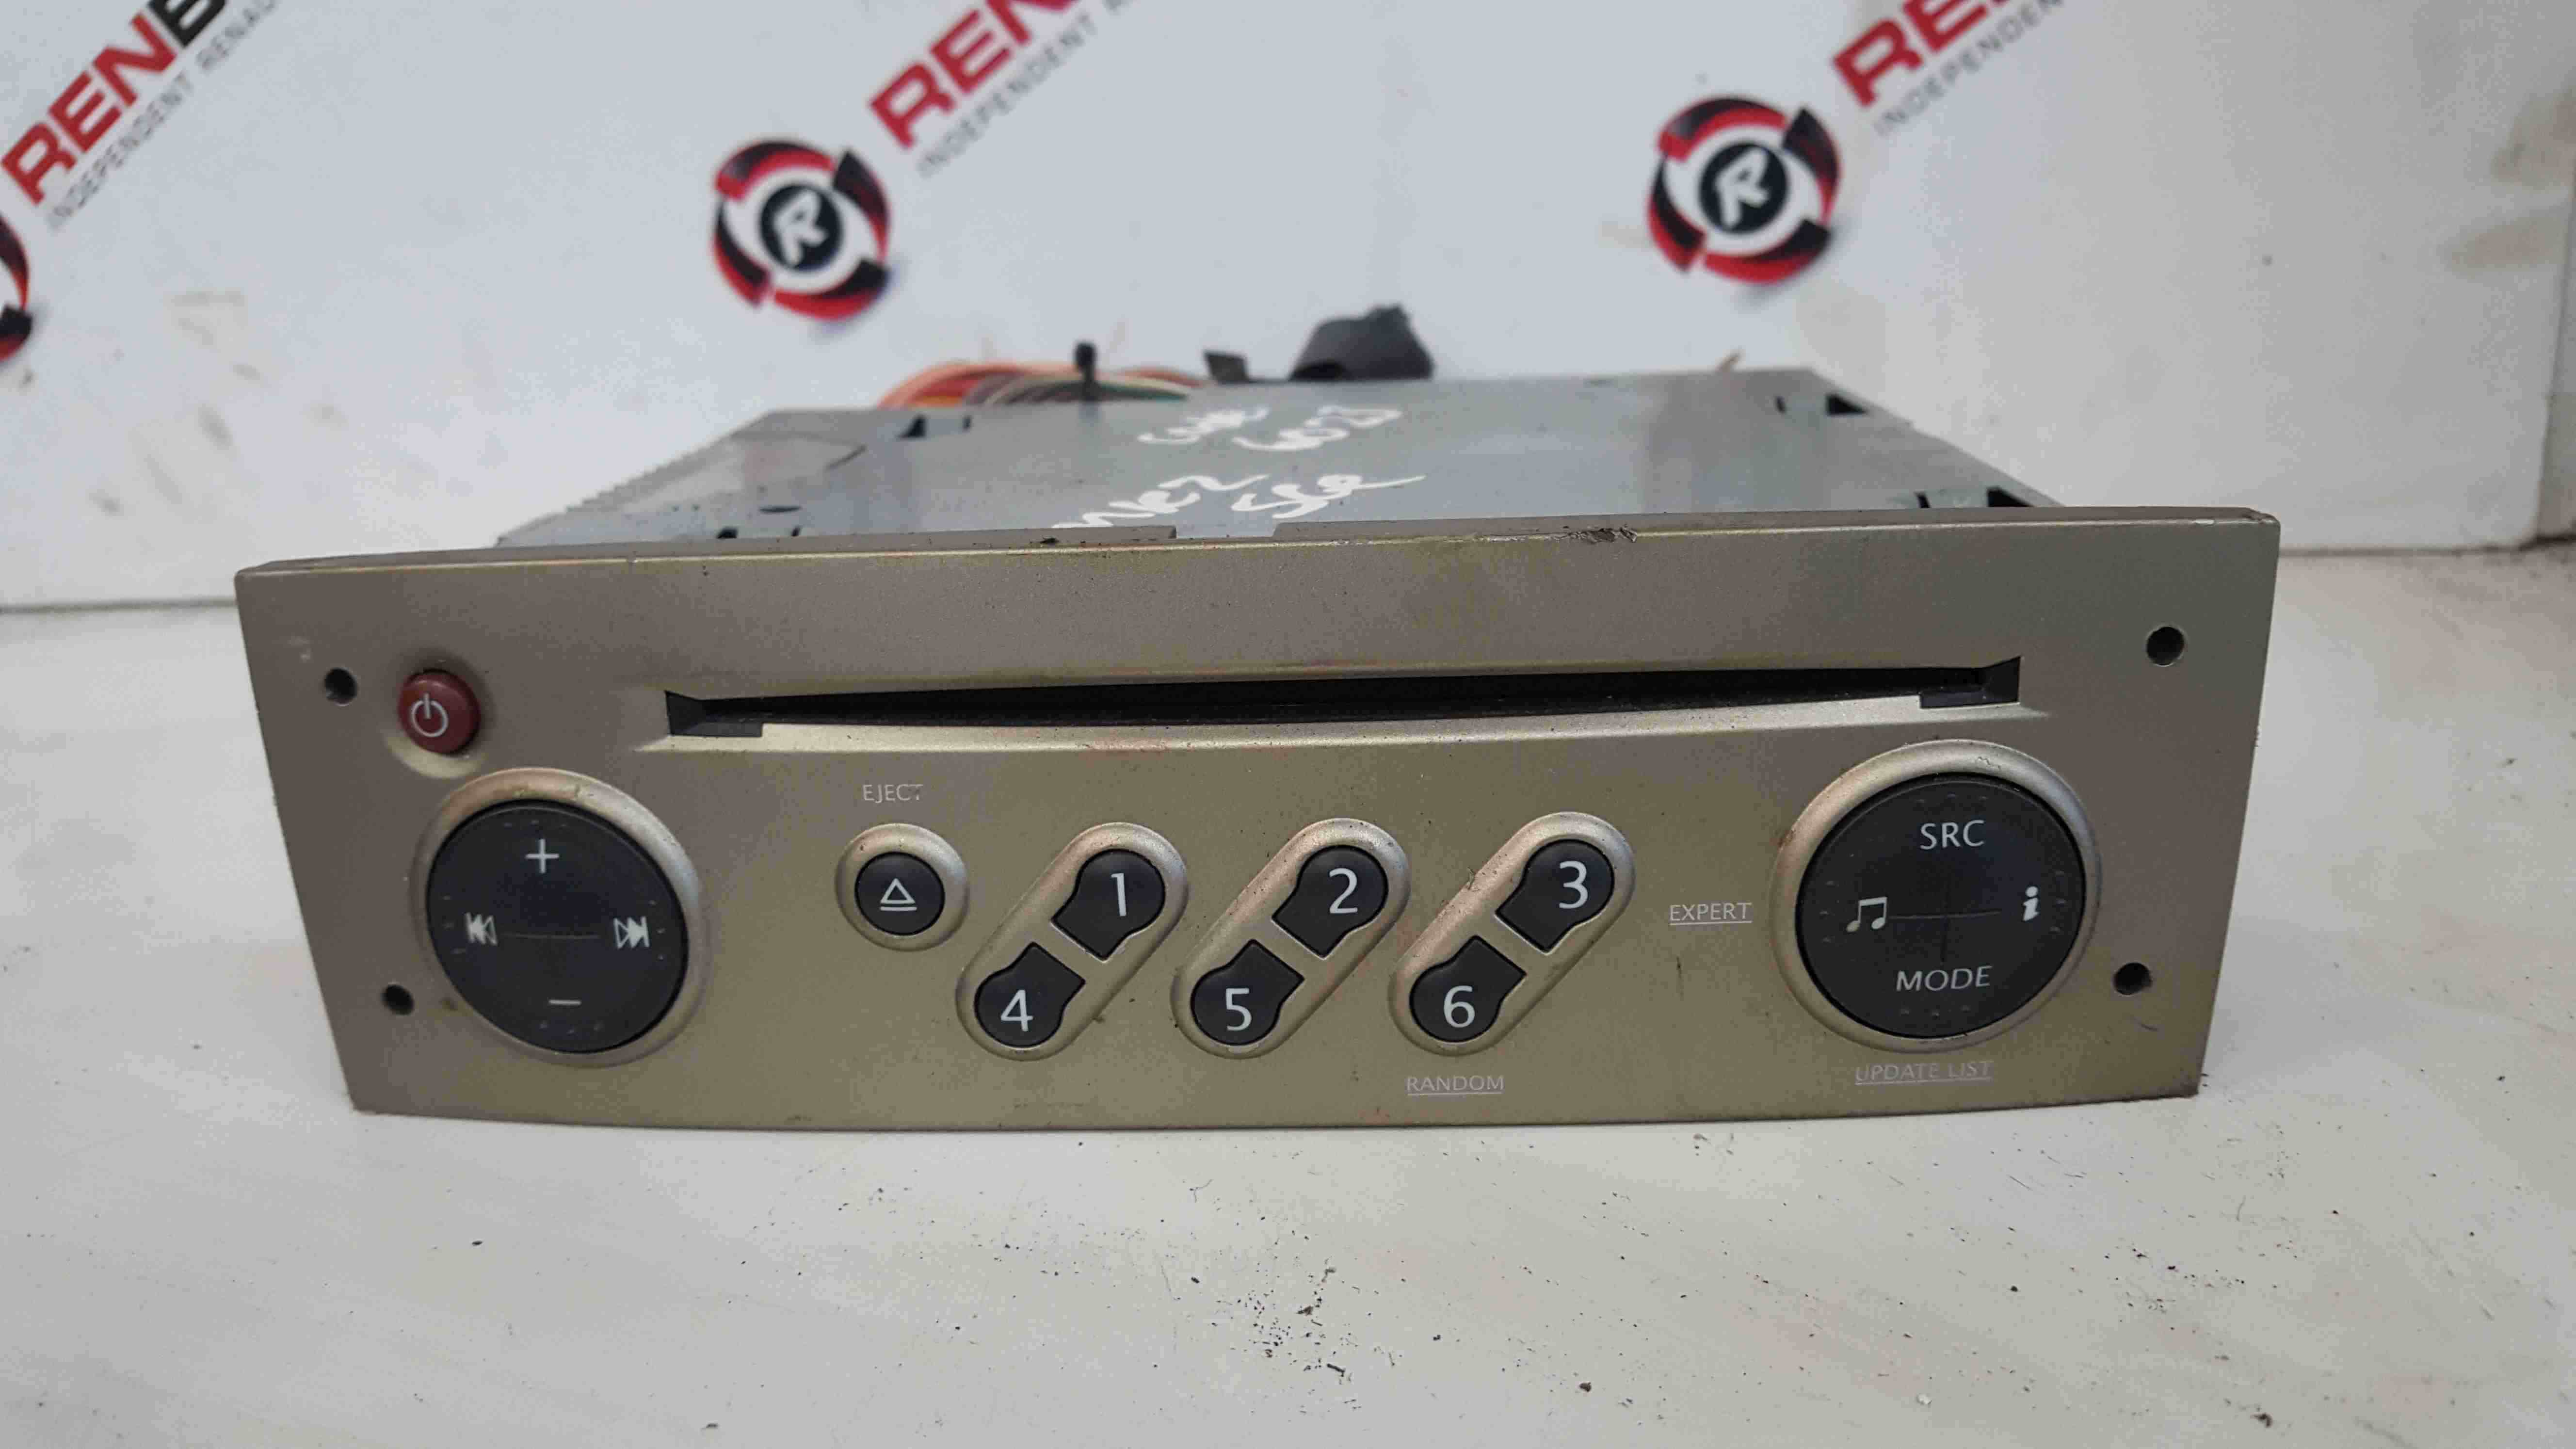 Renault Scenic MK2 2003-2009 Radio Cd Player Update List + Code Gold